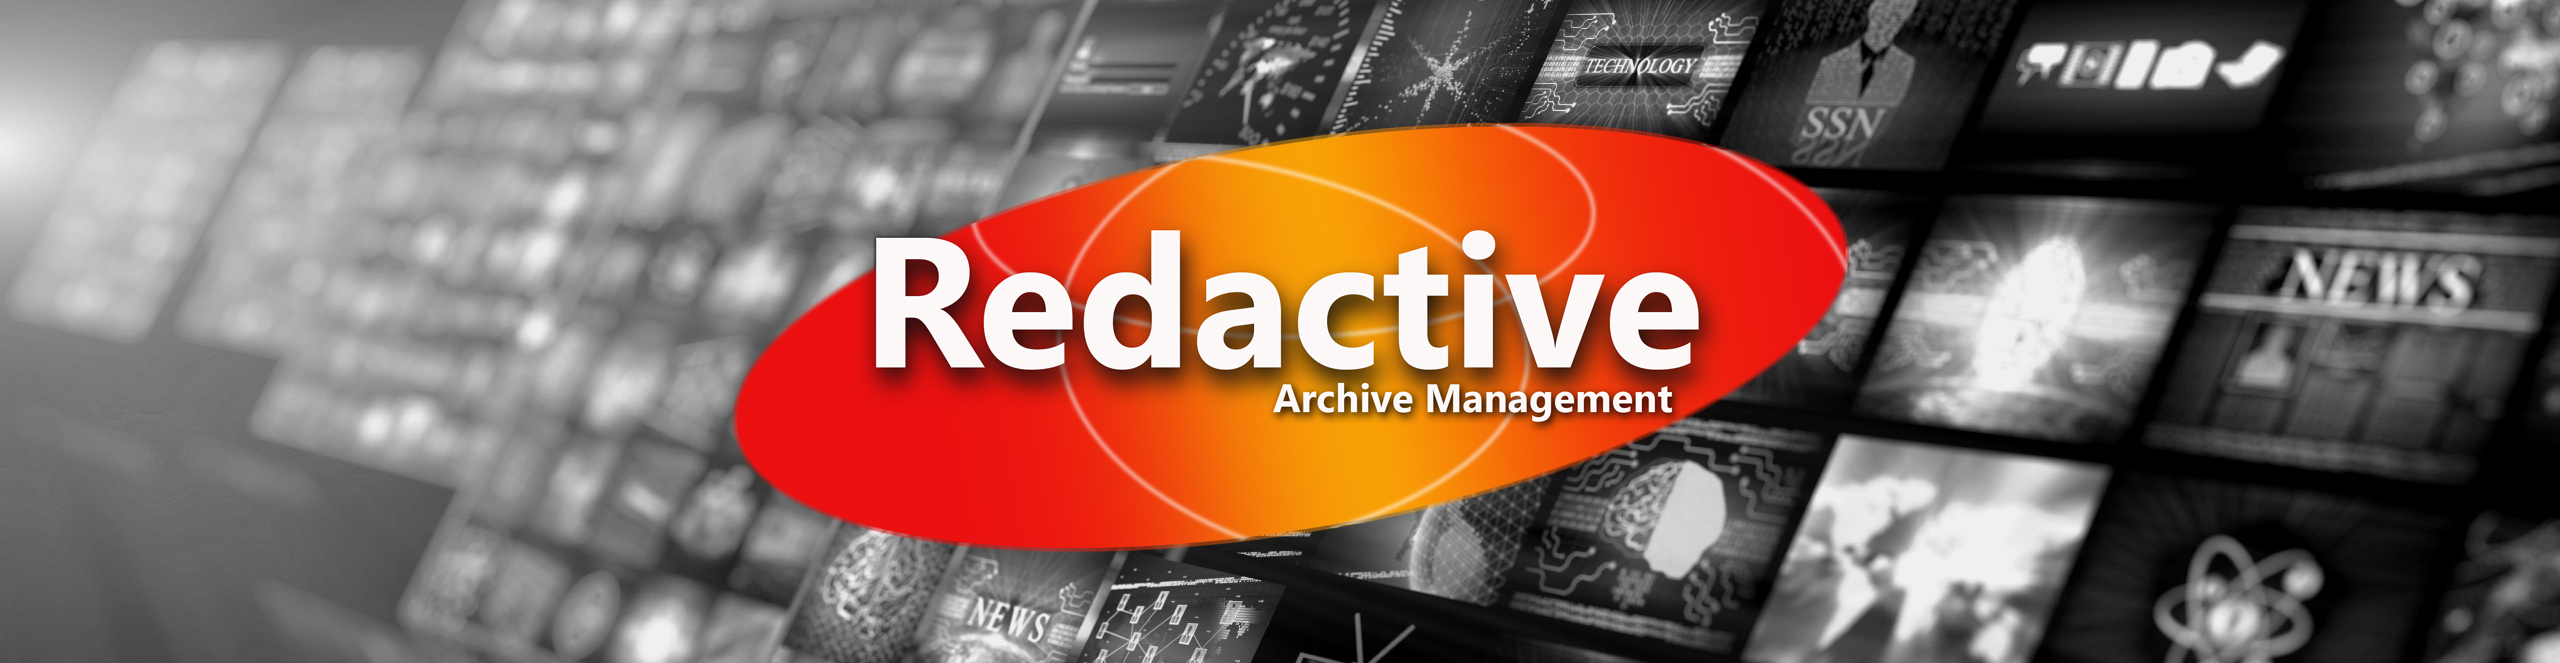 Redactive Archive Management, LLC